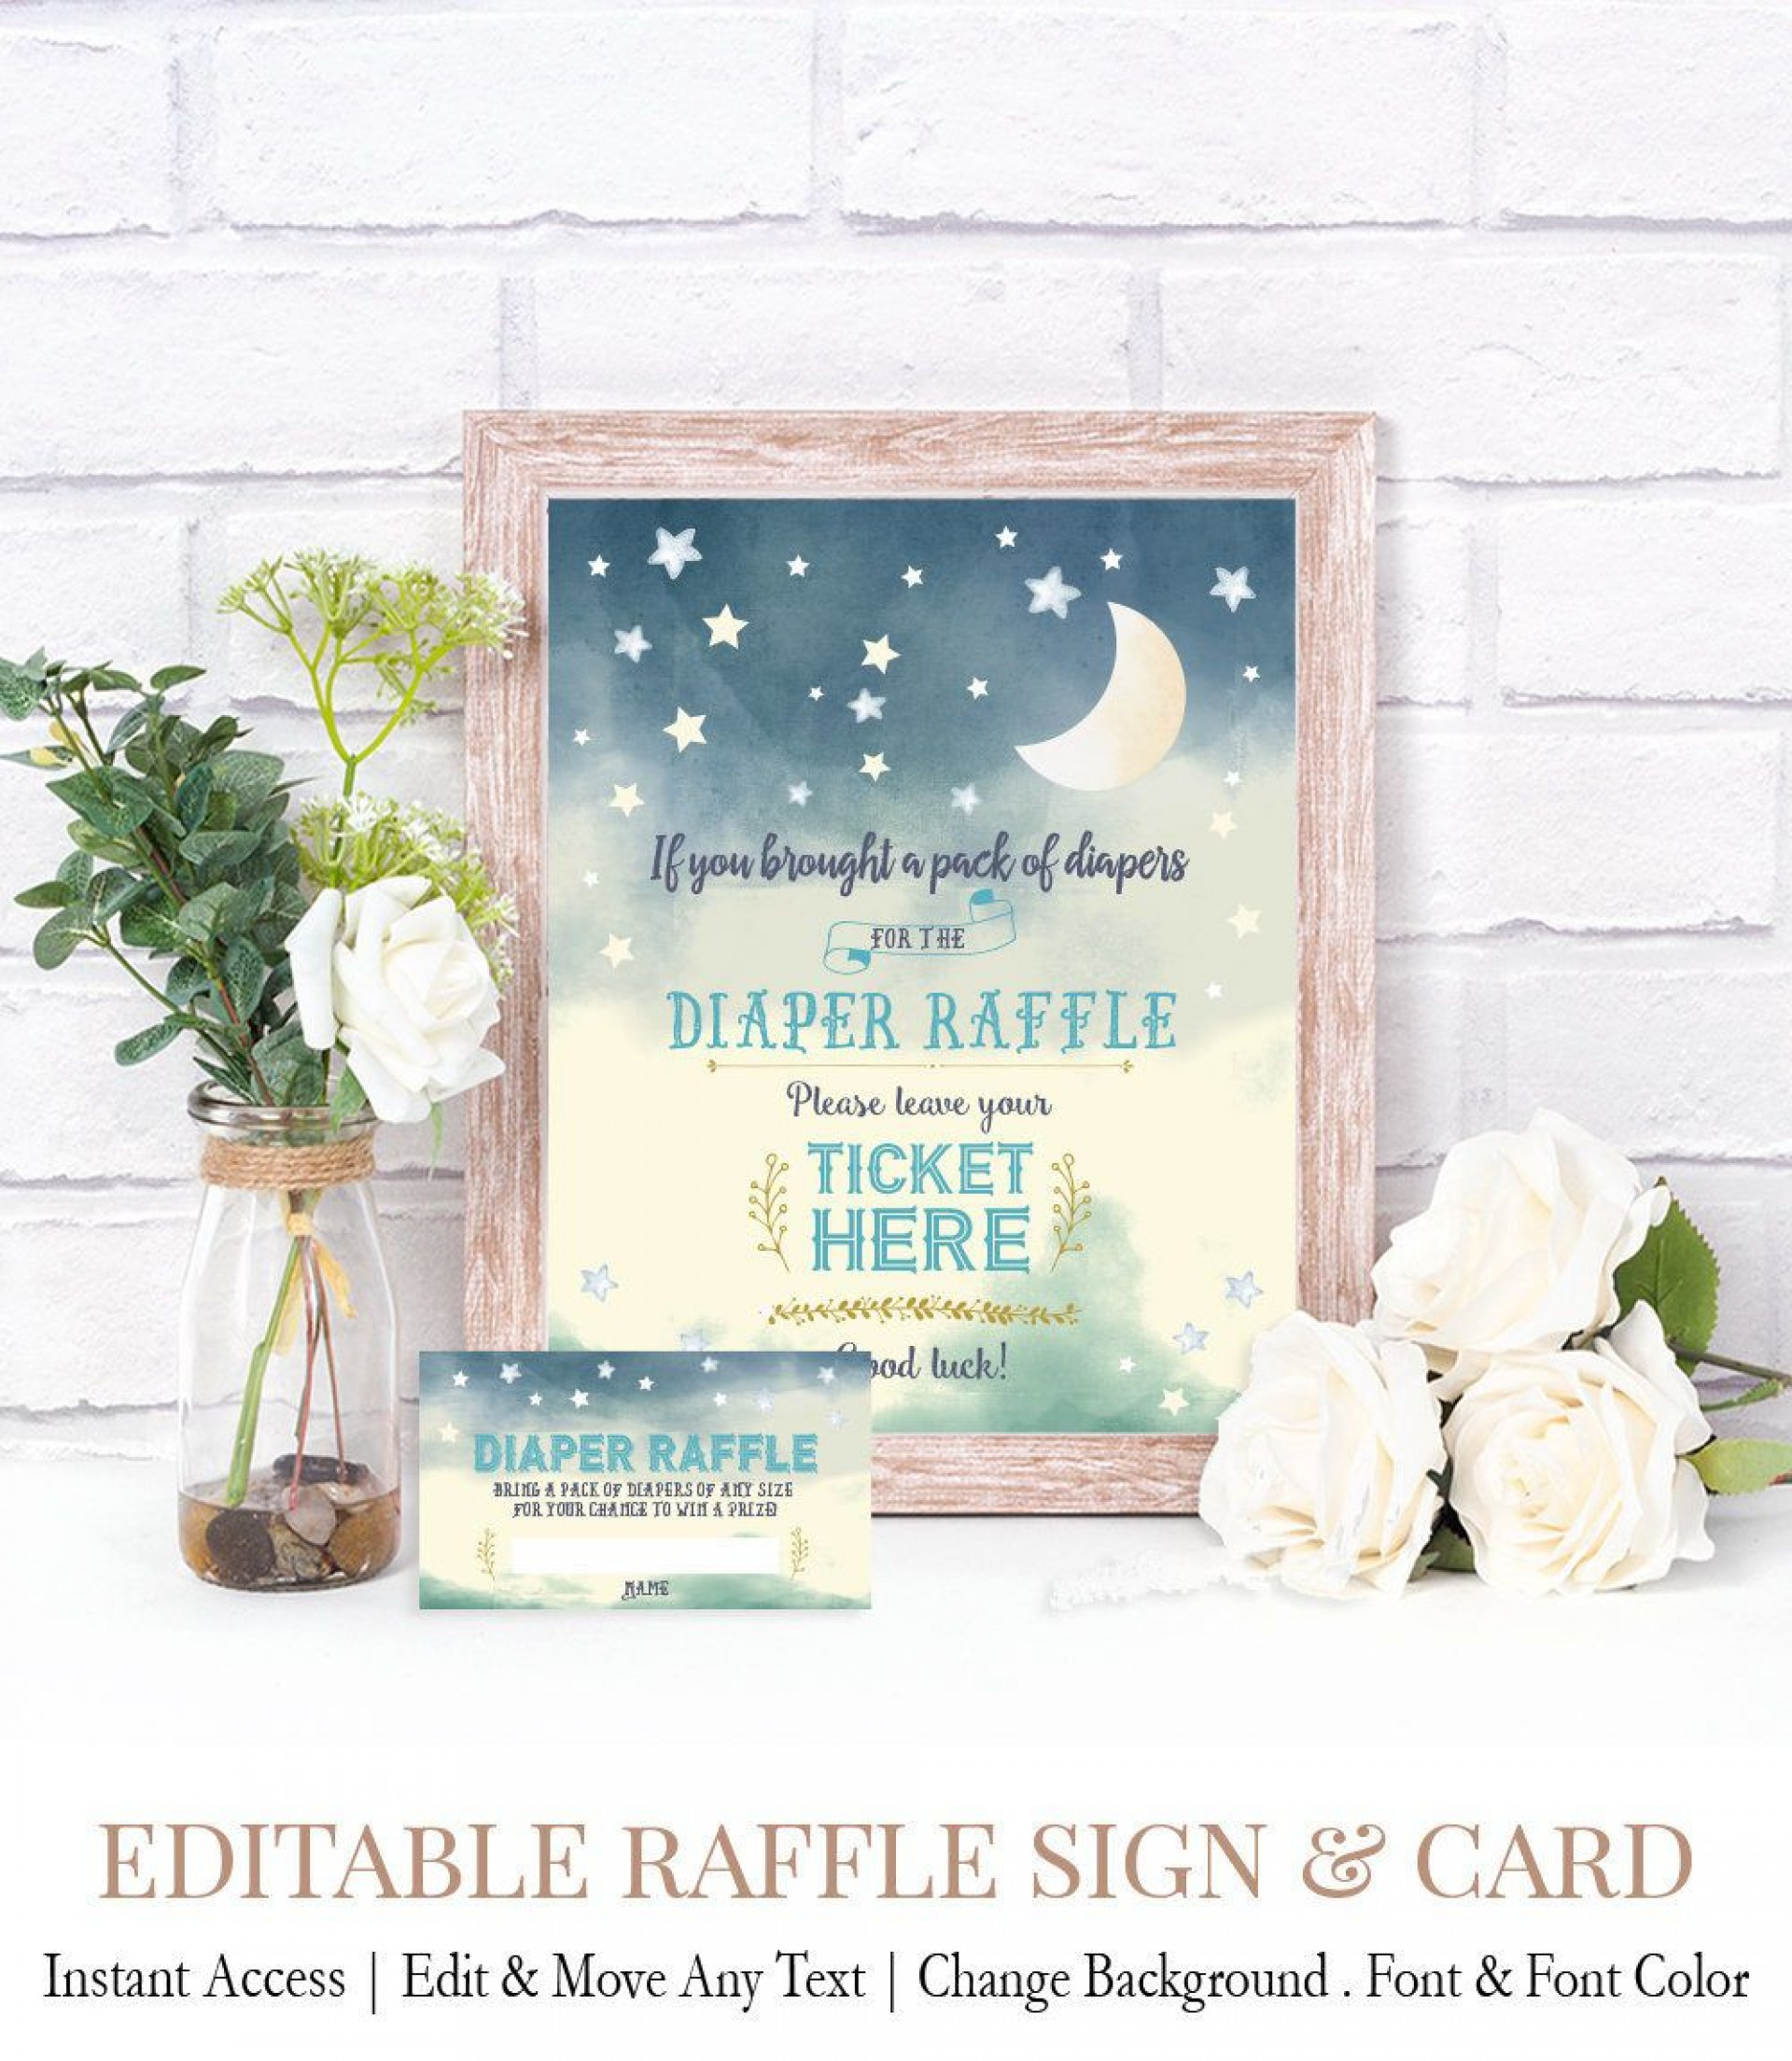 007 Excellent Diaper Raffle Ticket Template Sample  Boy Free Printable Print Black And White1920